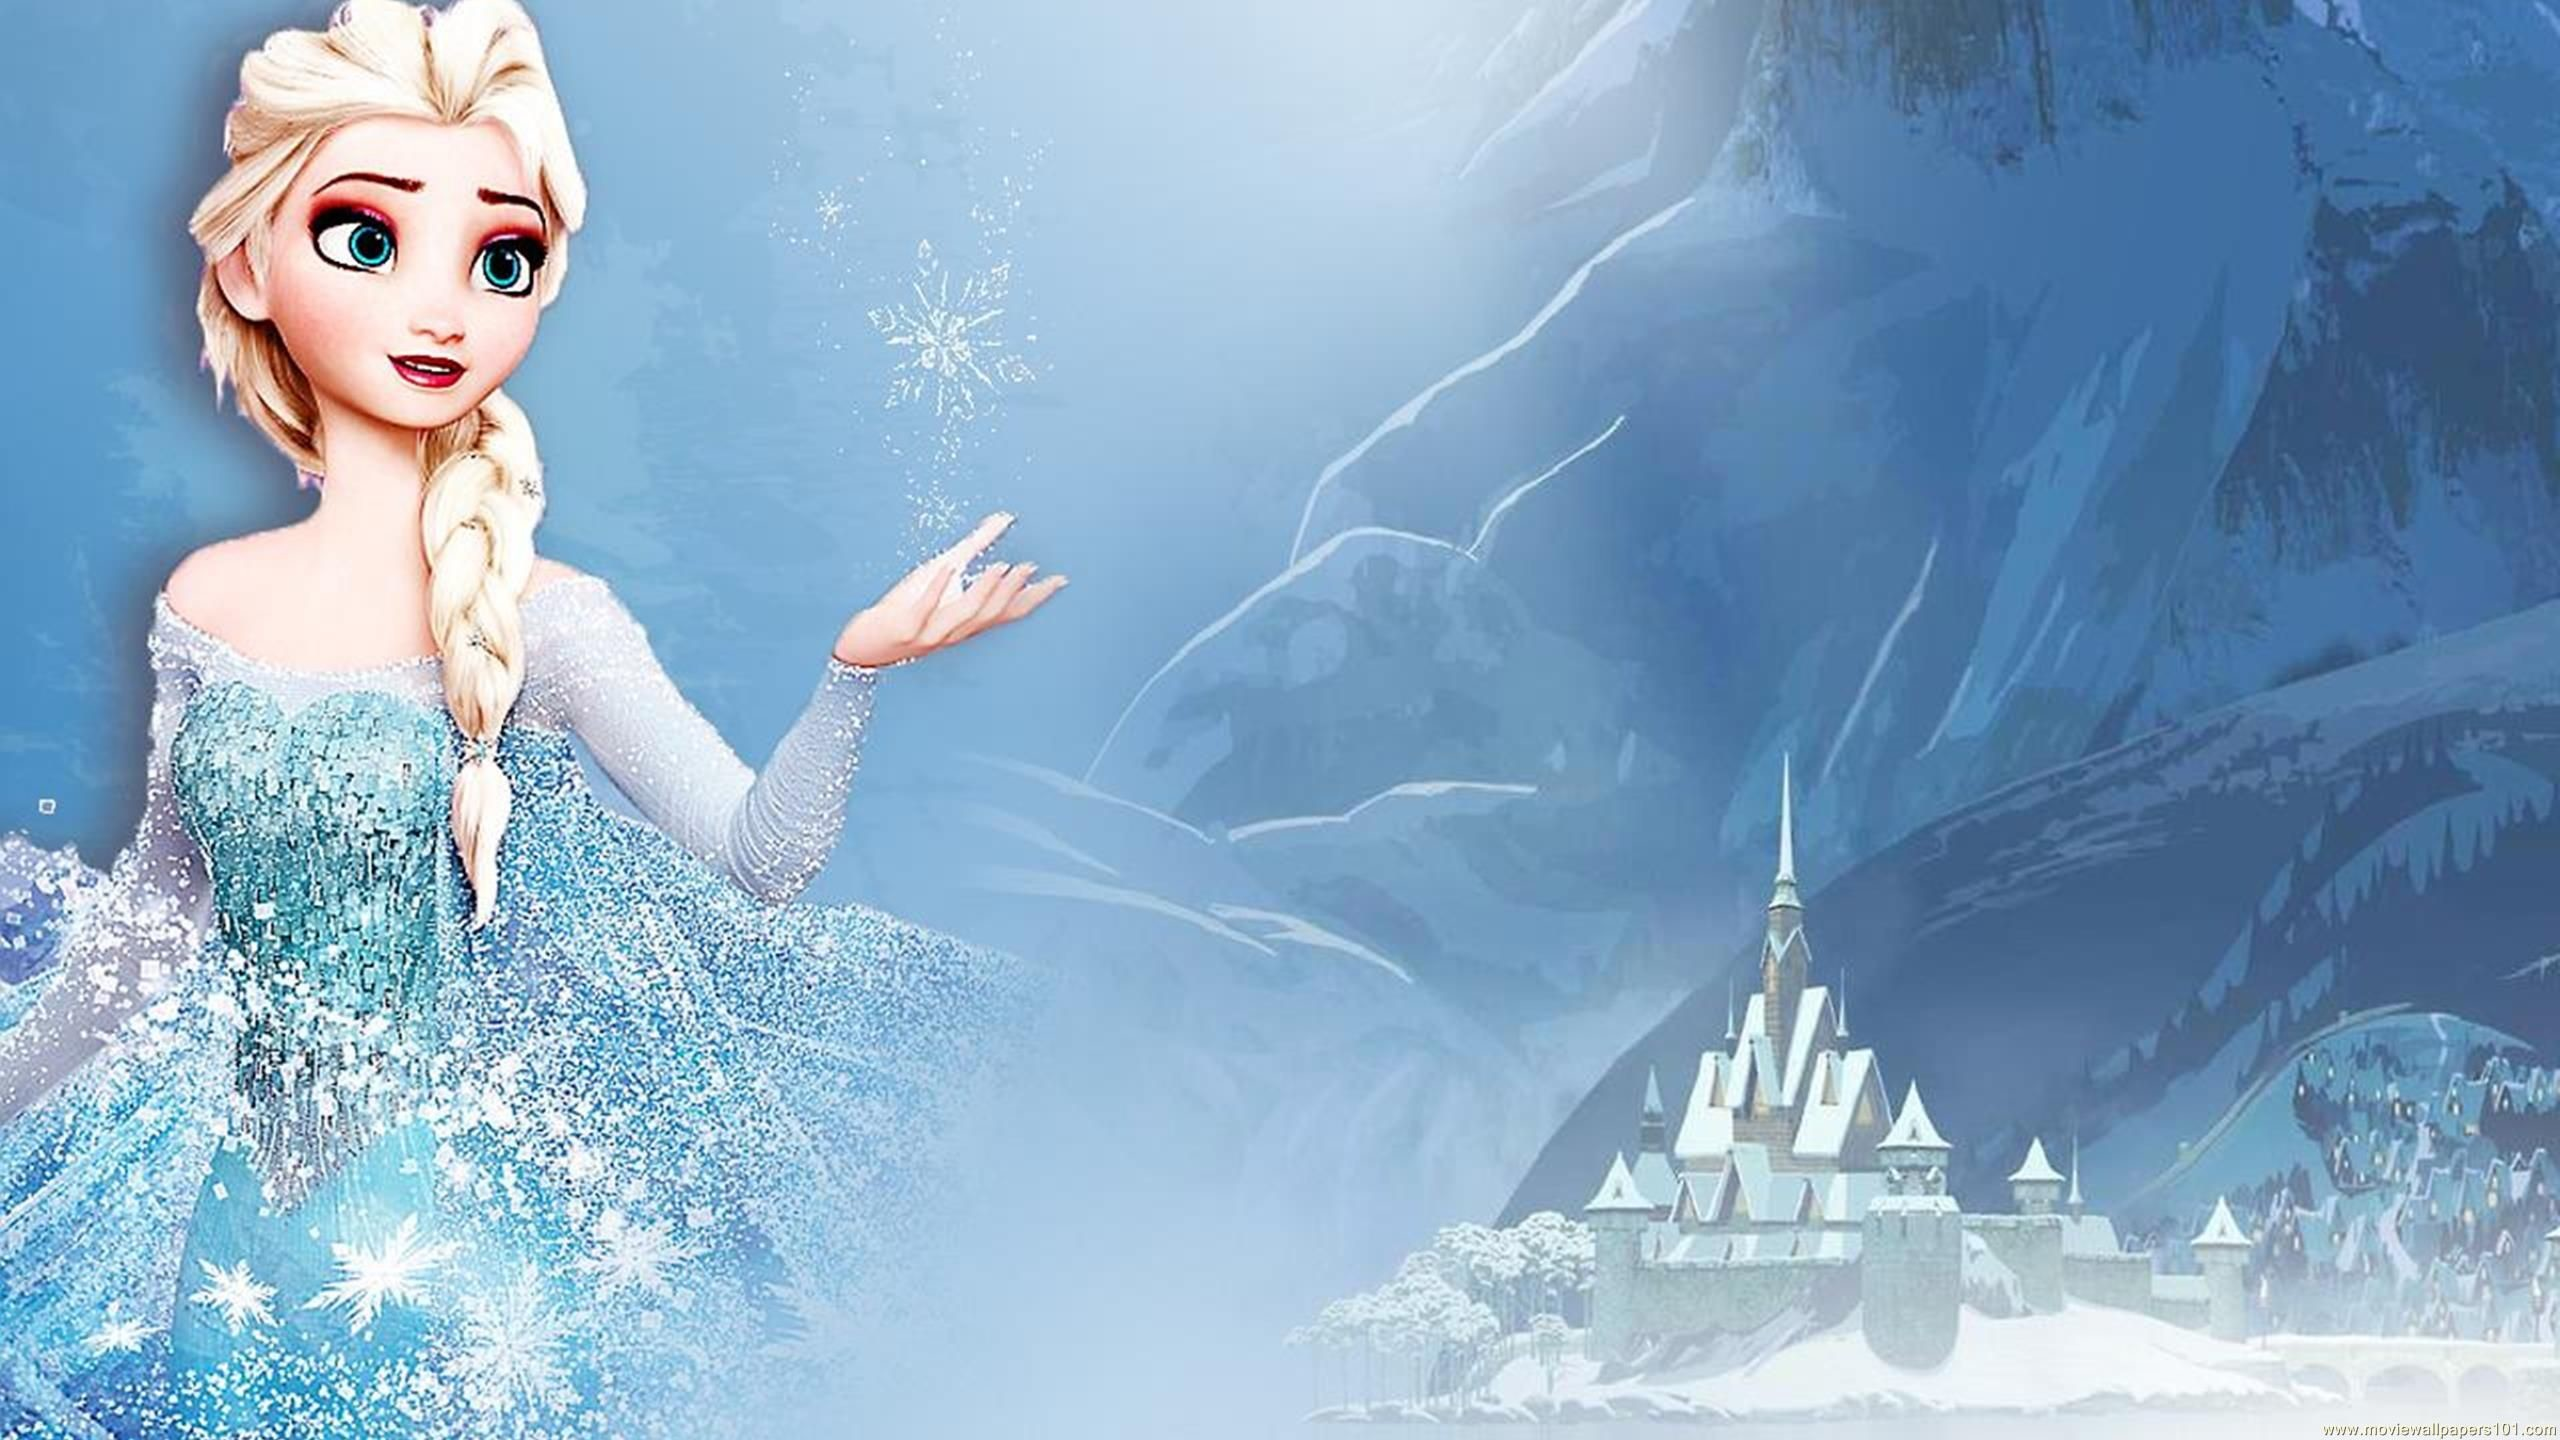 Res: 2560x1440, Frozen Elsa Wallpapers - Free download latest Frozen Elsa Wallpapers for  Computer, Mobile, iPhone, iPad or any Gadget at WallpapersCharlie.com.